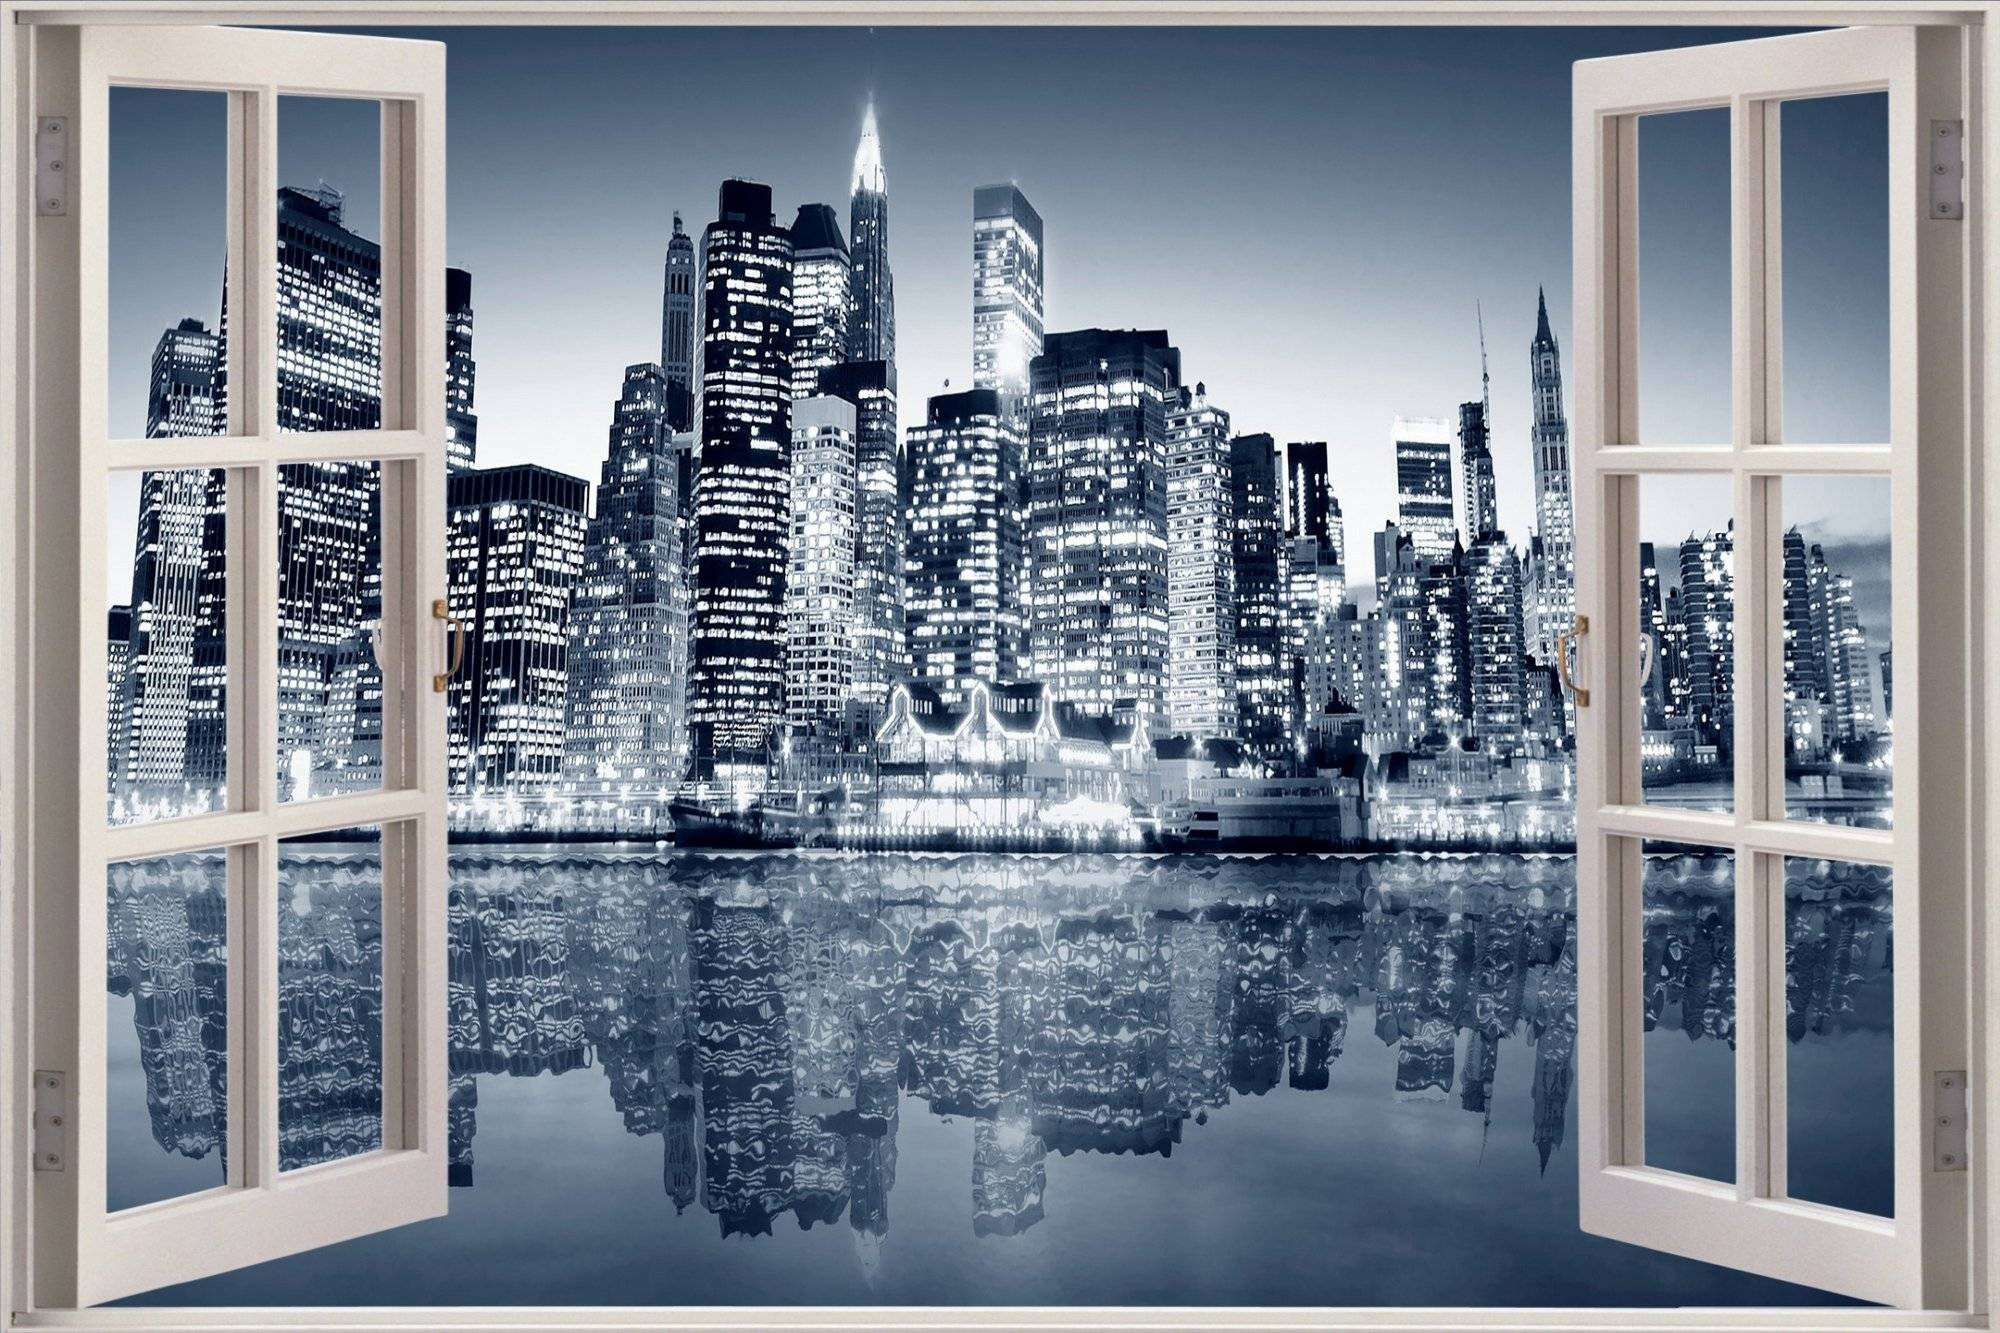 New York 3d Wall Art | Wallartideas Pertaining To Most Up To Date New York 3d Wall Art (View 5 of 20)